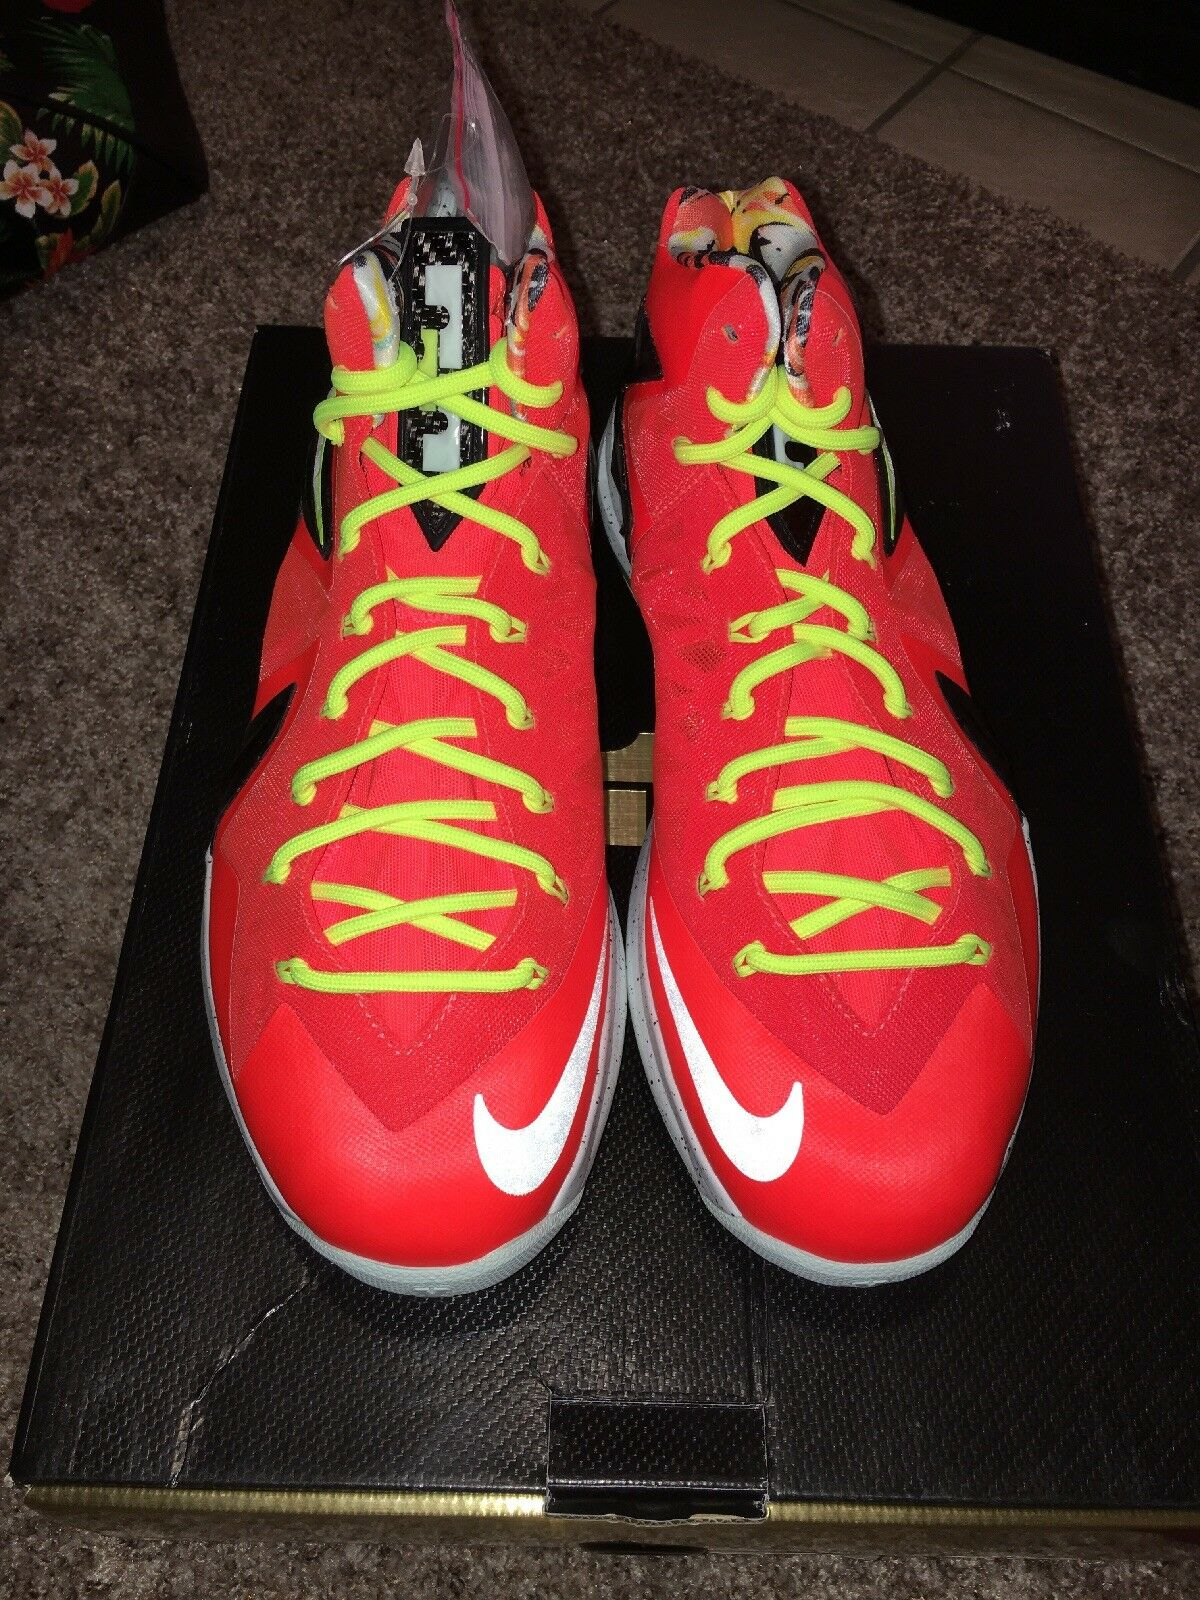 best website 348c7 17b75 Nike Lebron James James James X Ten P.S. Elite Size 9.5 Total Crimson 260  933f76. Nike Air Jordan 1 ...